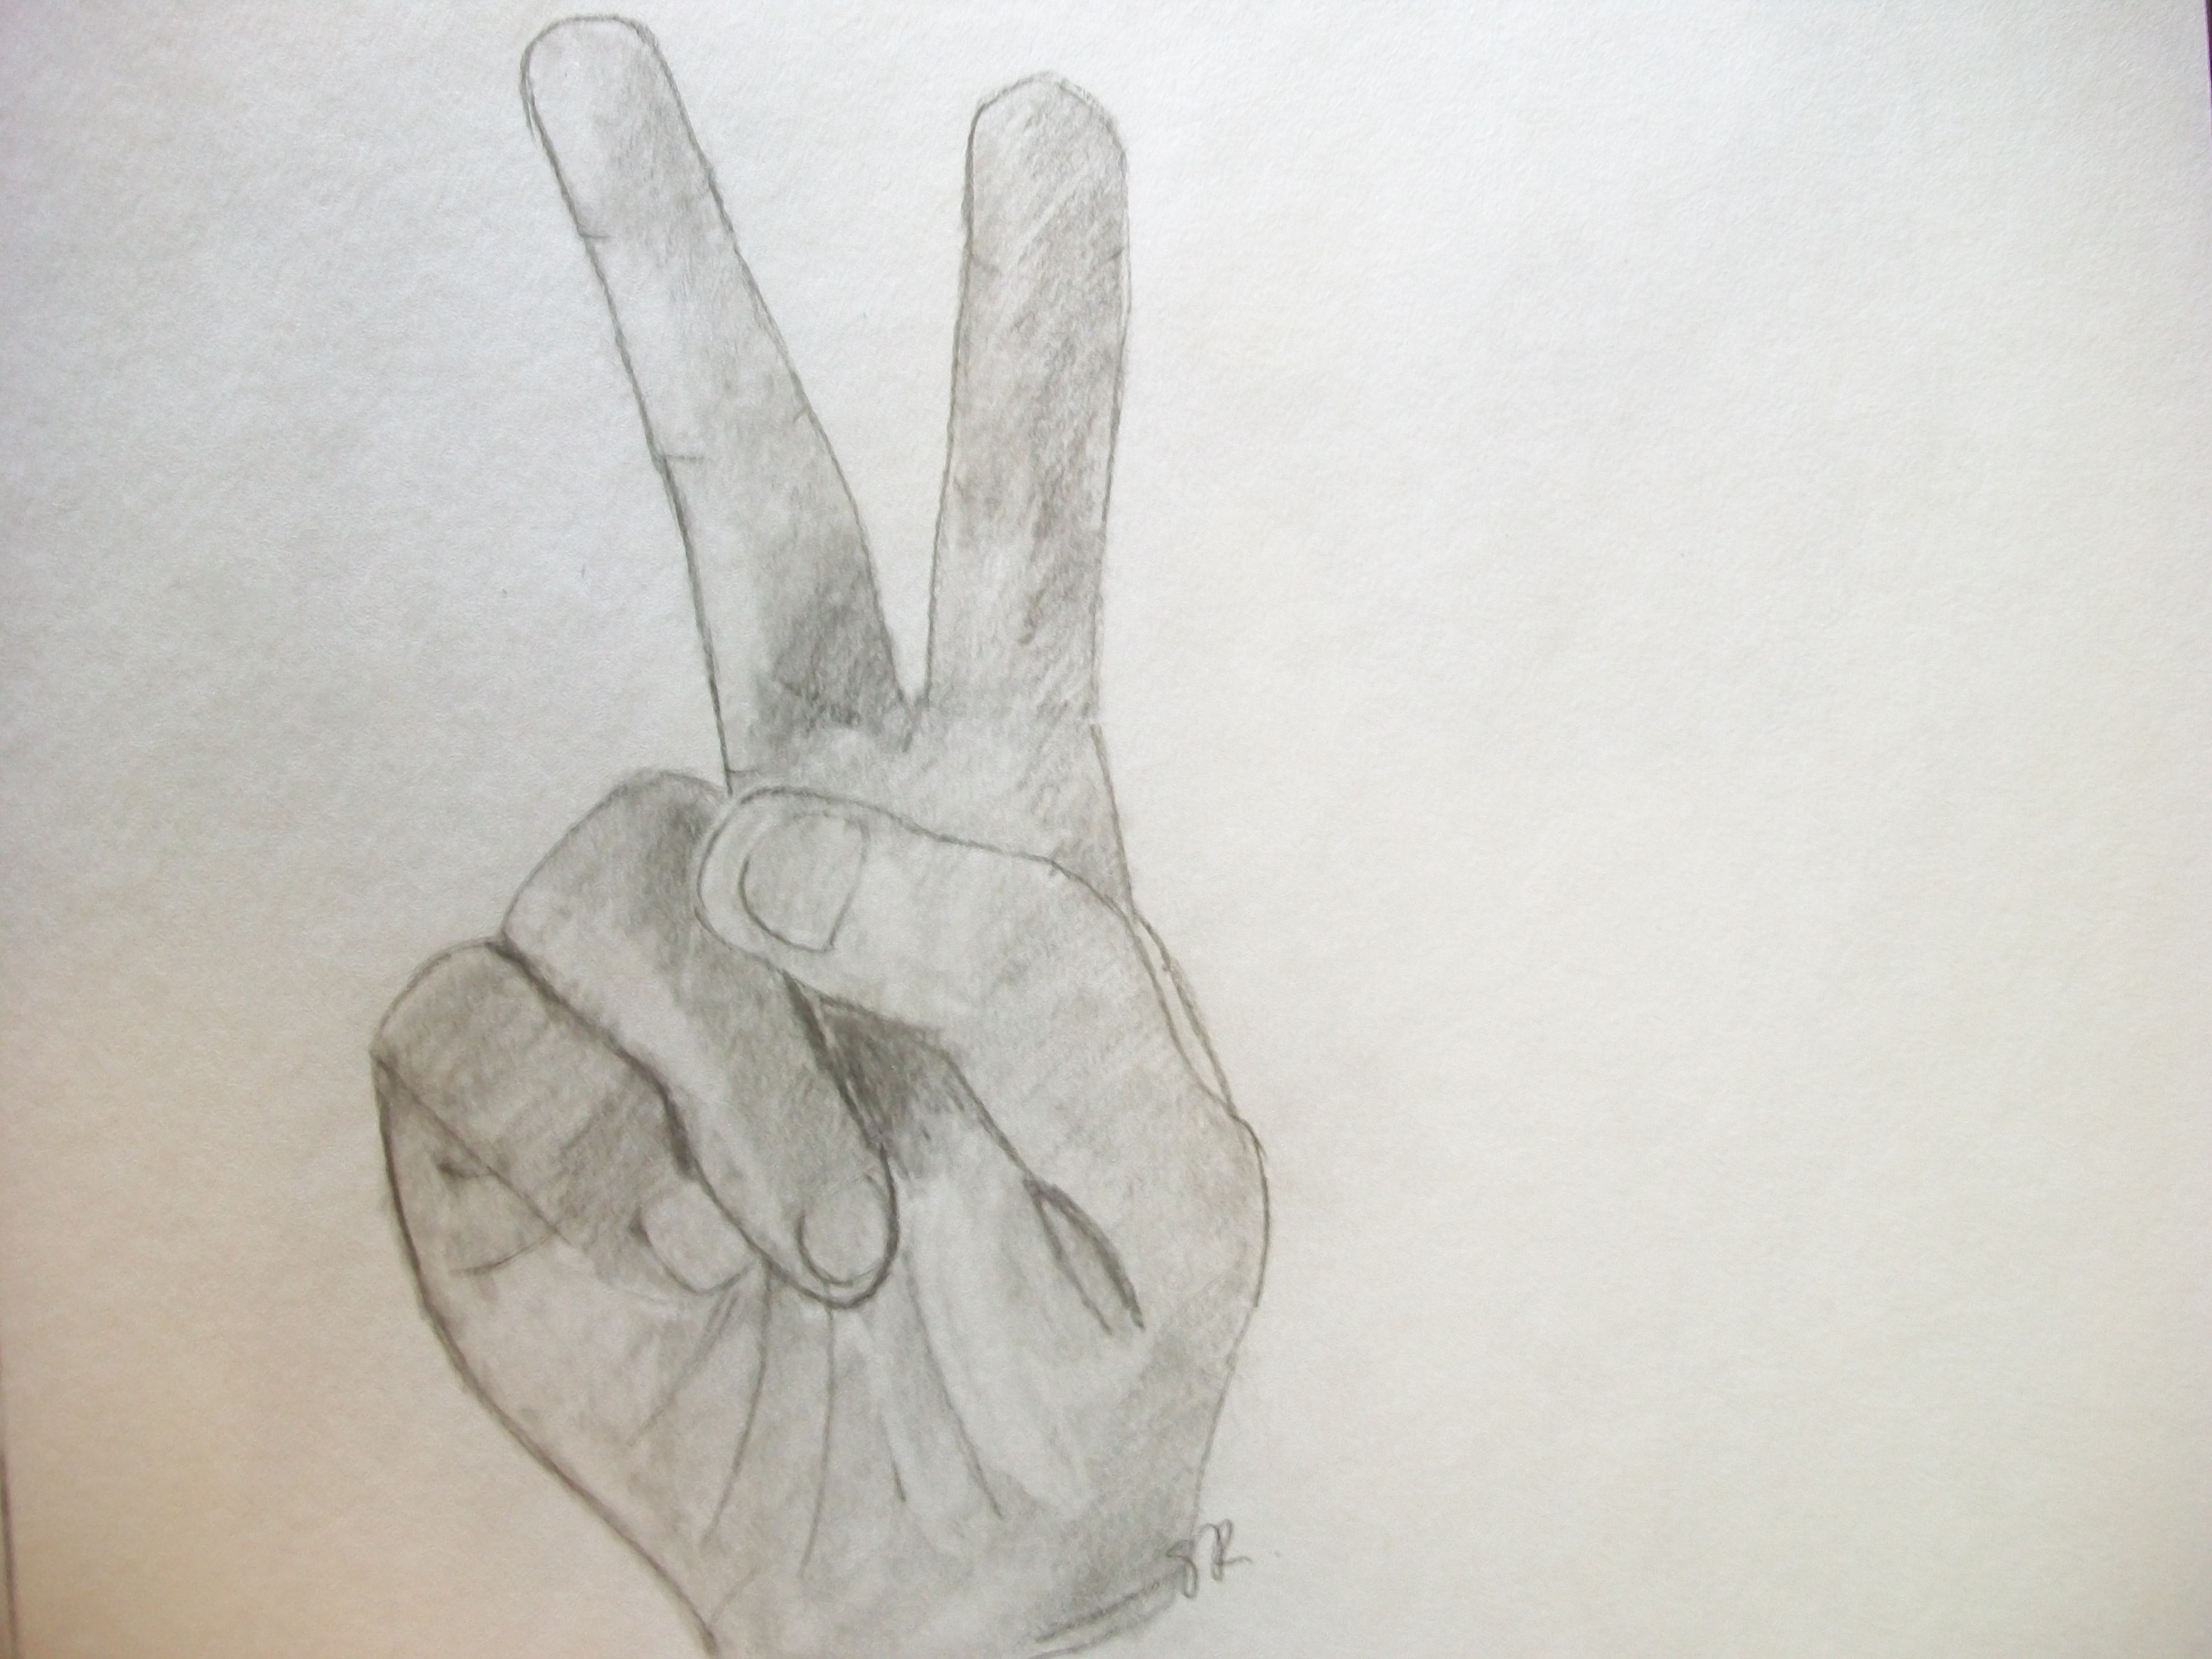 Drawn peace sign anime hand 2011 Drawing Jul © 15